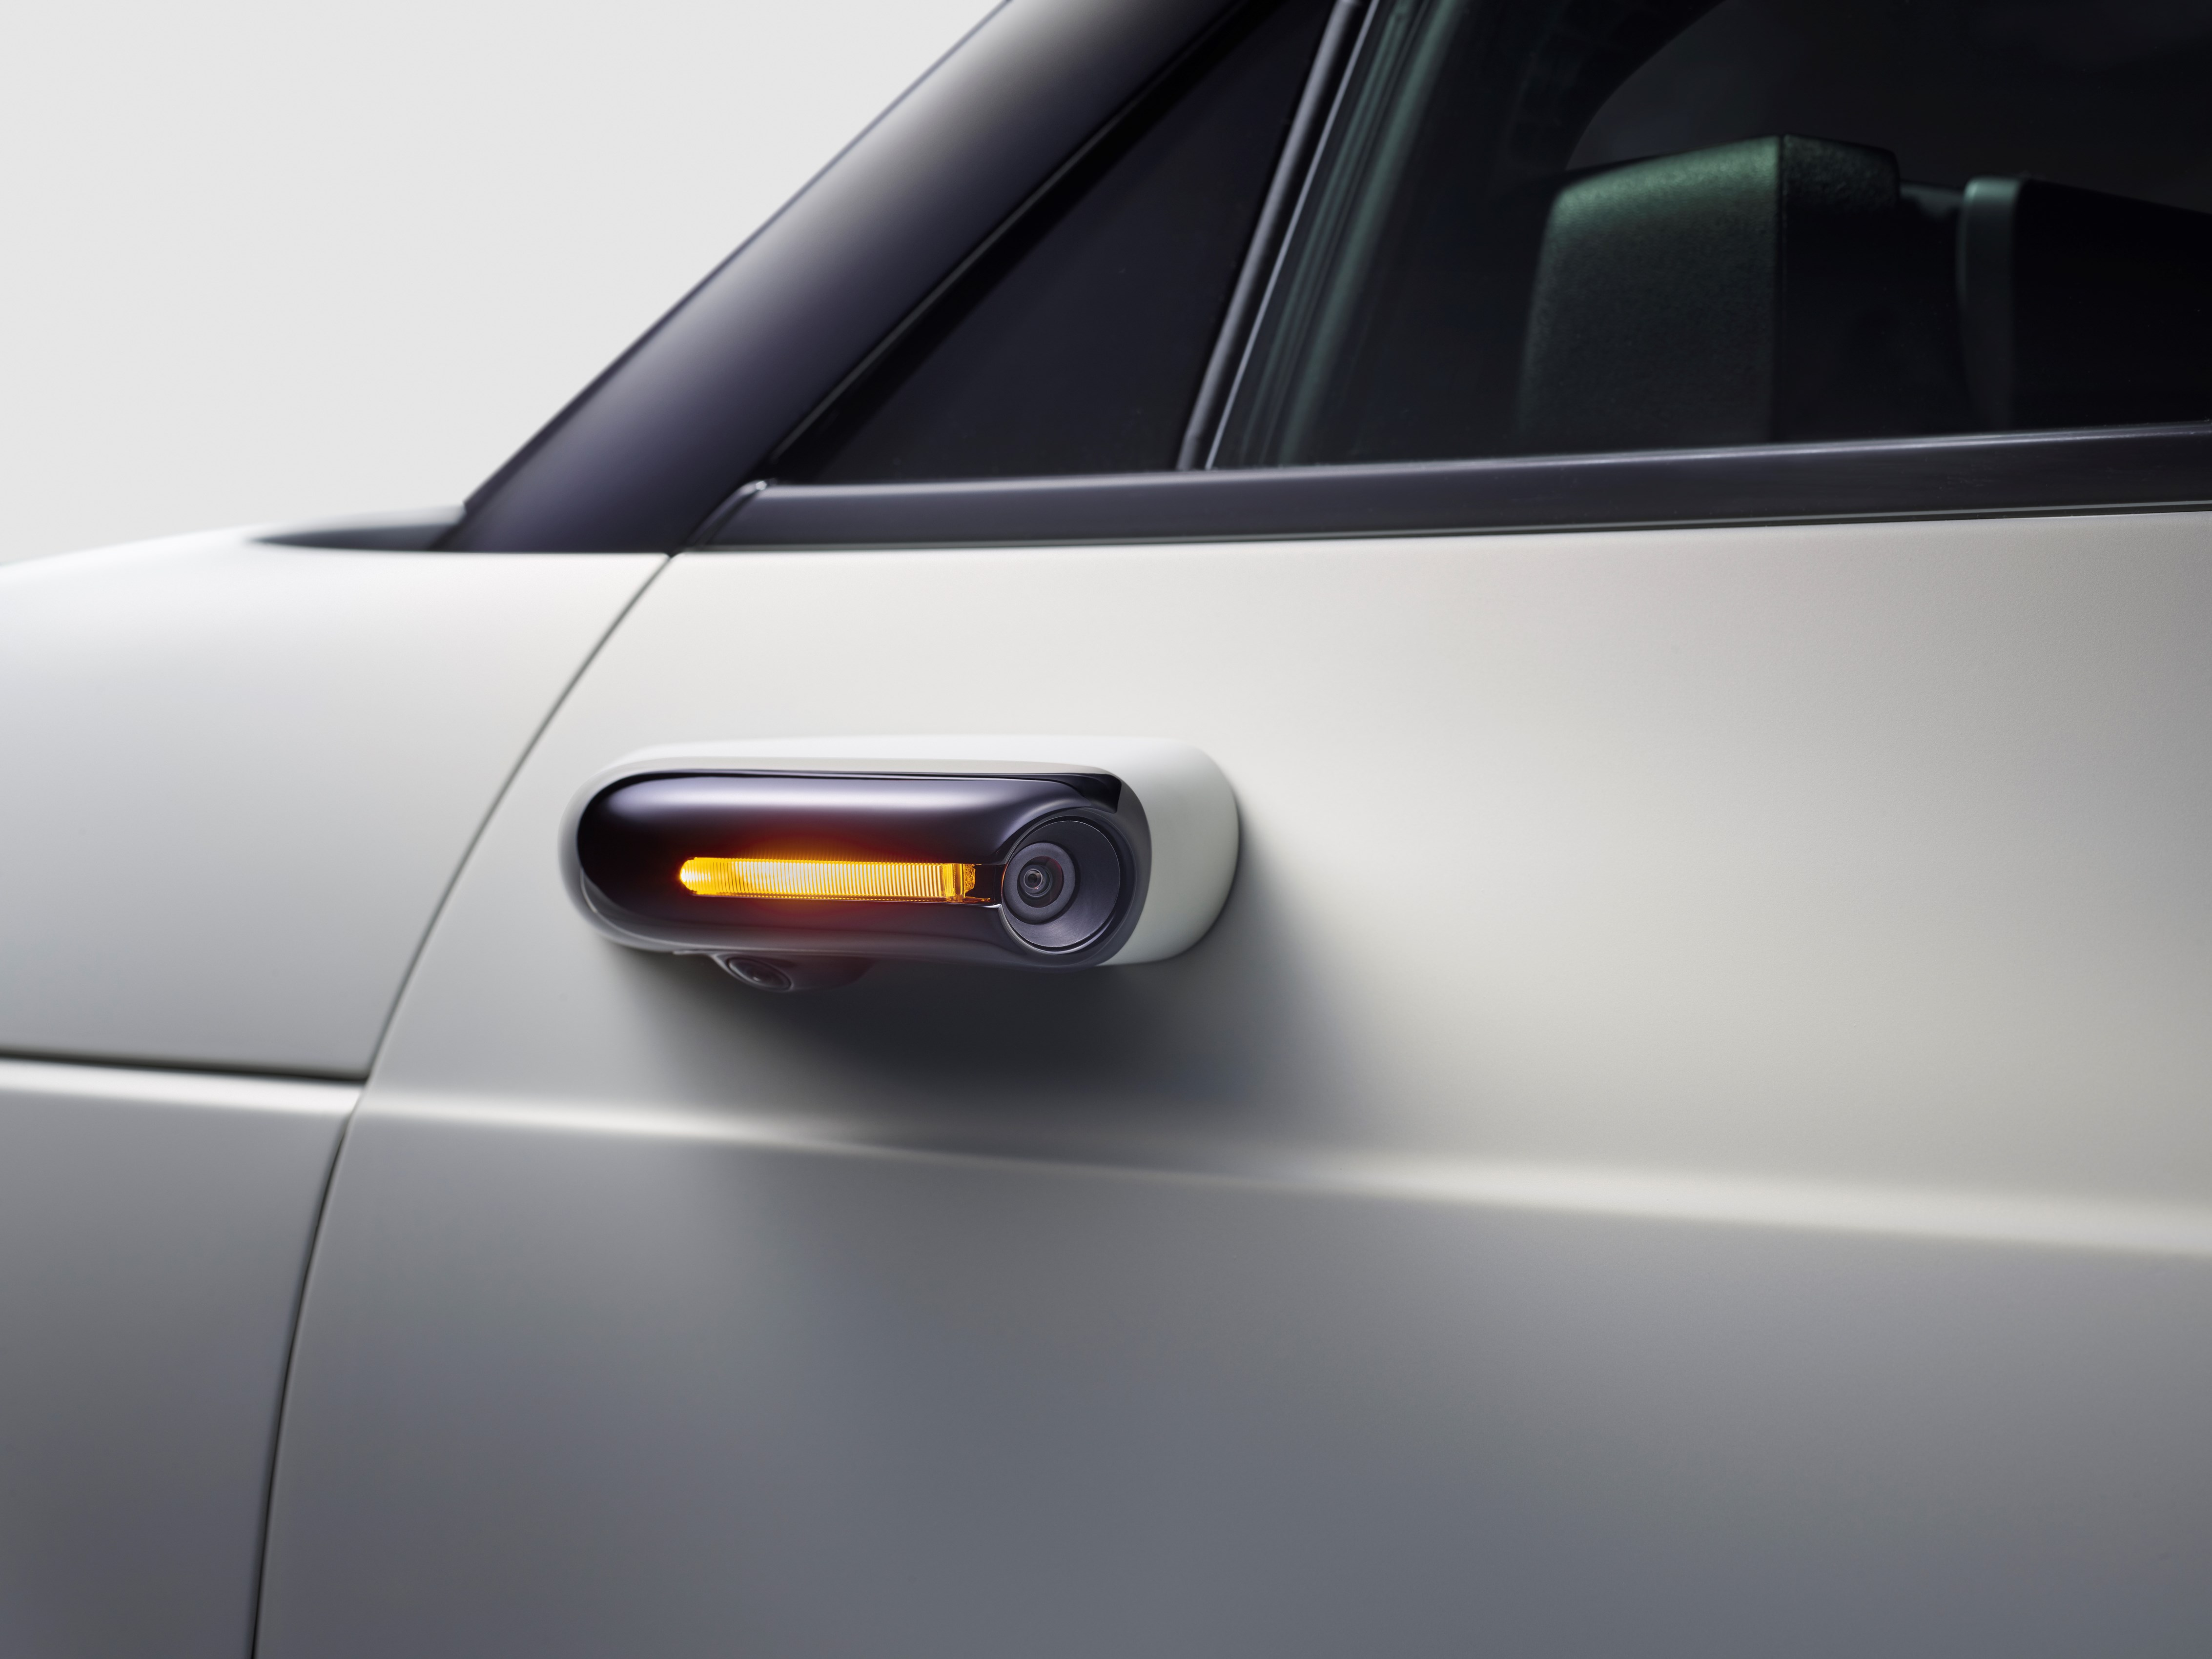 The all-electric Honda e is bringing its side view mirrors inside